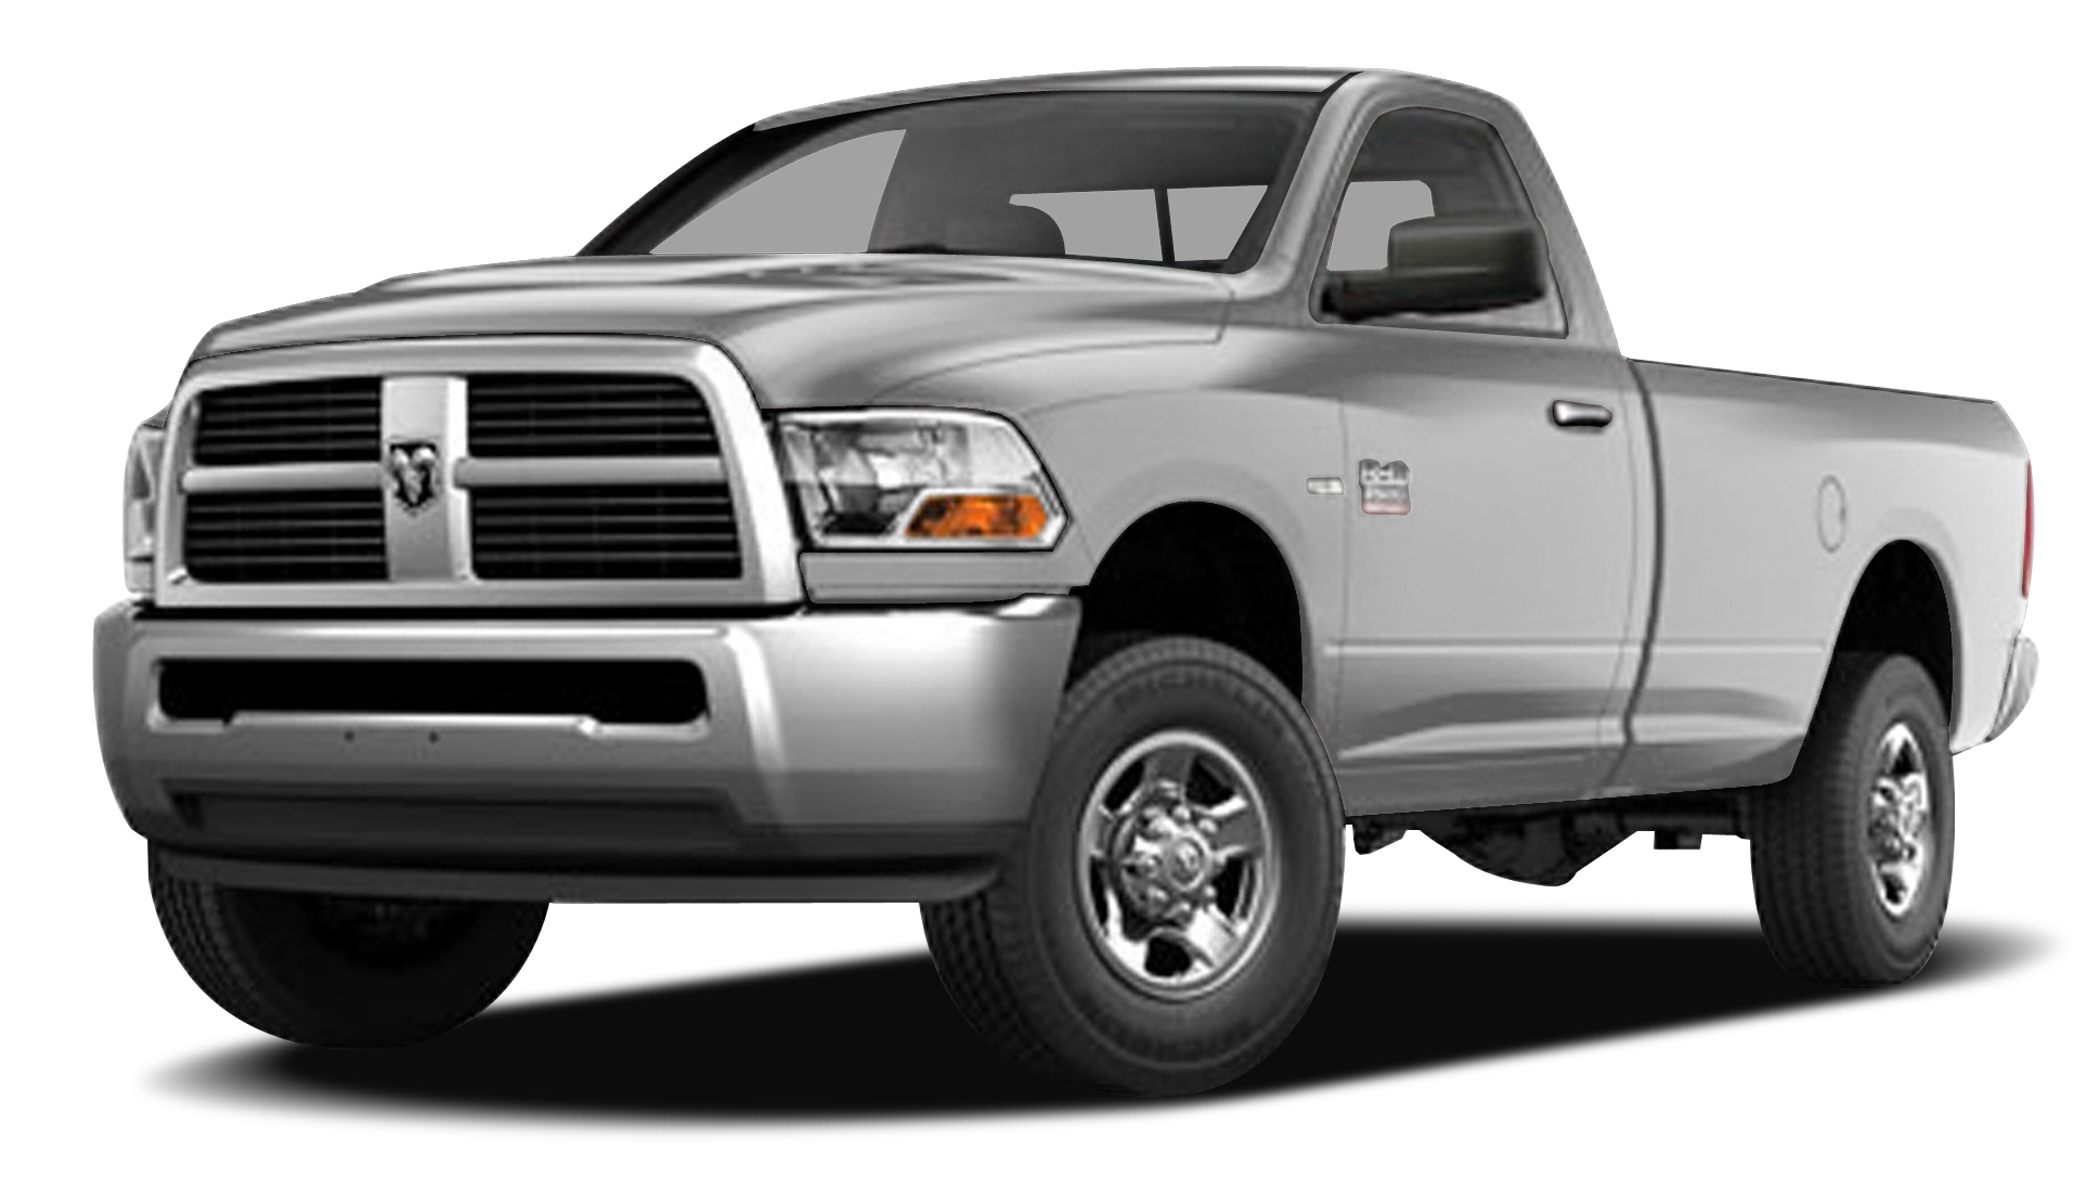 2010 Dodge Ram 2500 SLT Crew Cab Pickup for sale in Bridgeport for $31,595 with 42,458 miles